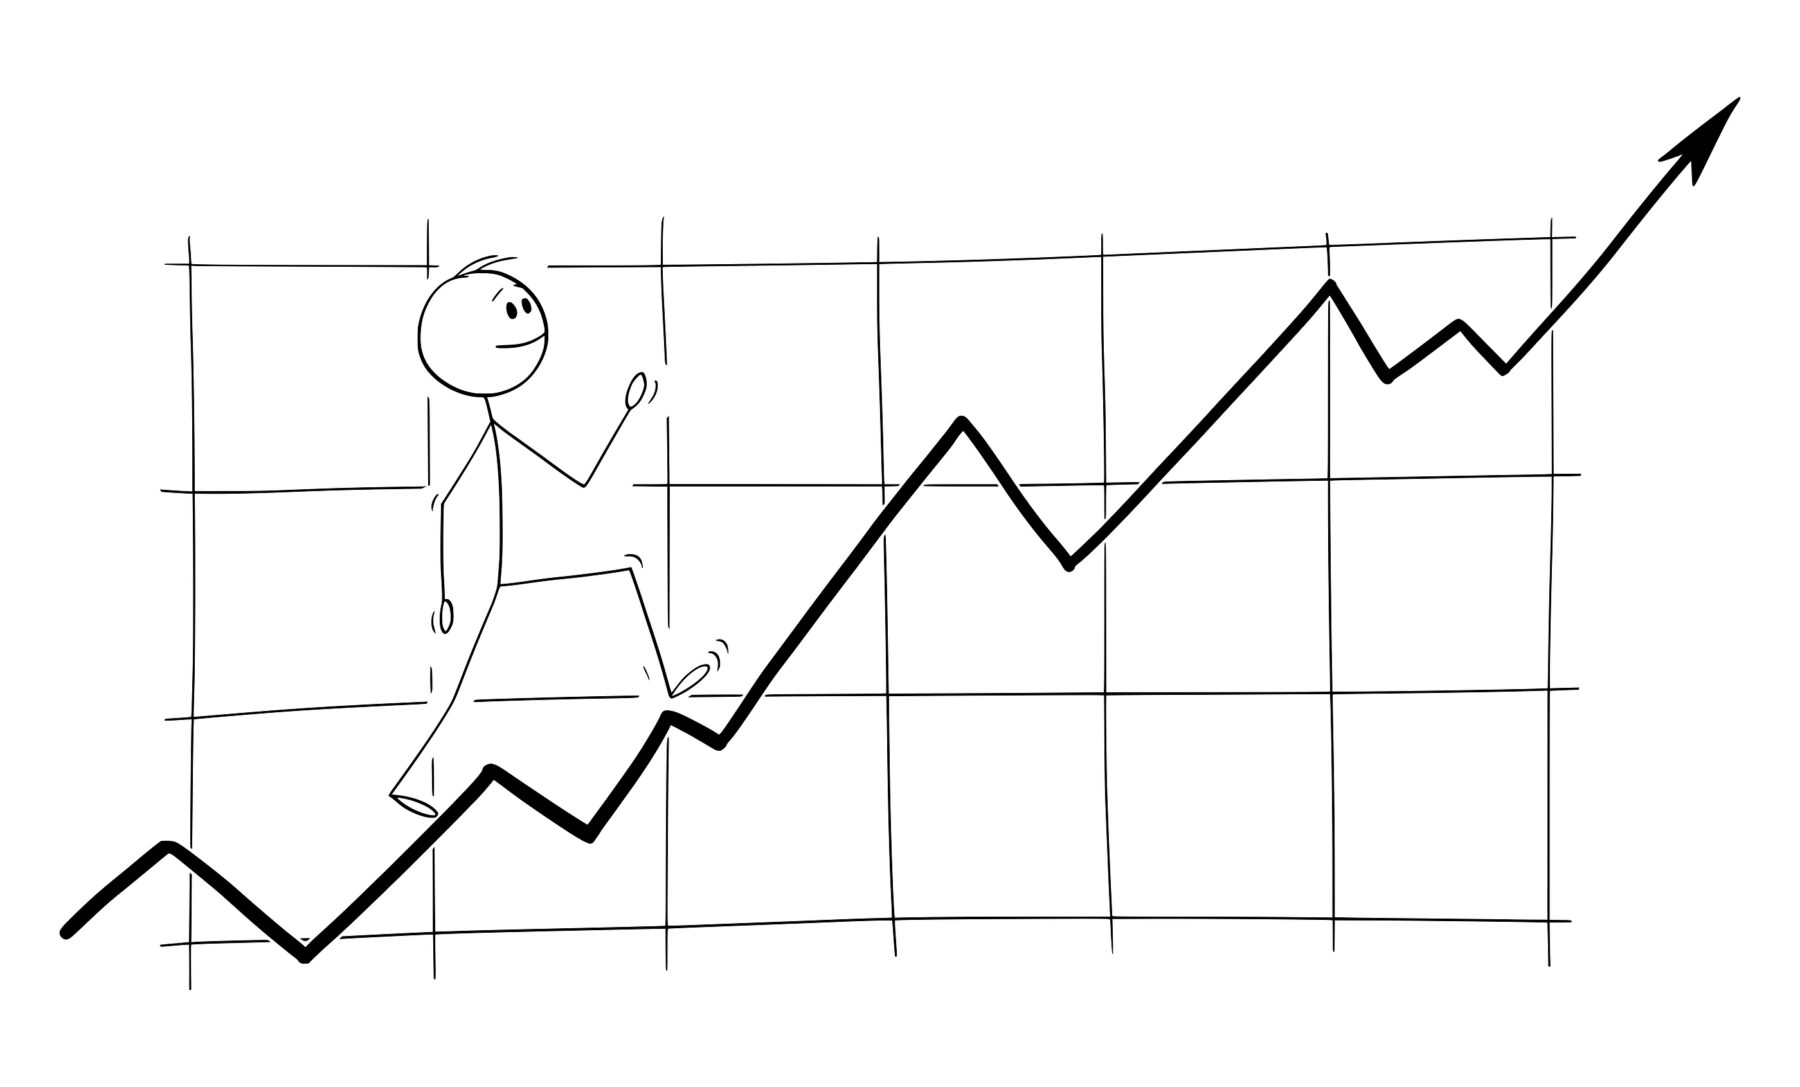 stickman illustration walking up investment earnings chart